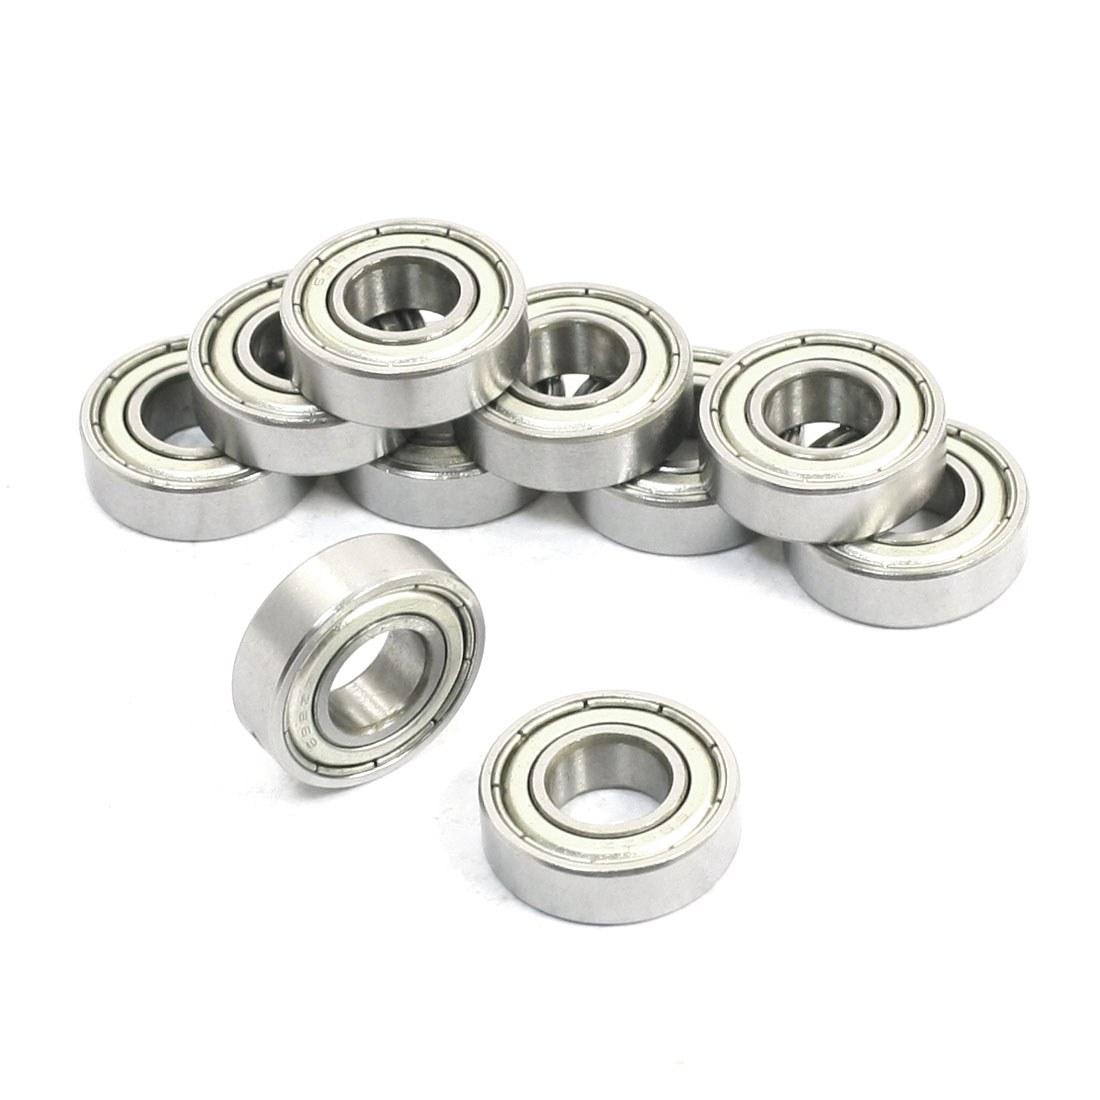 10 Pcs 699ZZ 9mm x 20mm x 6mm One Row Sealed Deep Groove Ball Bearings - image 1 of 1